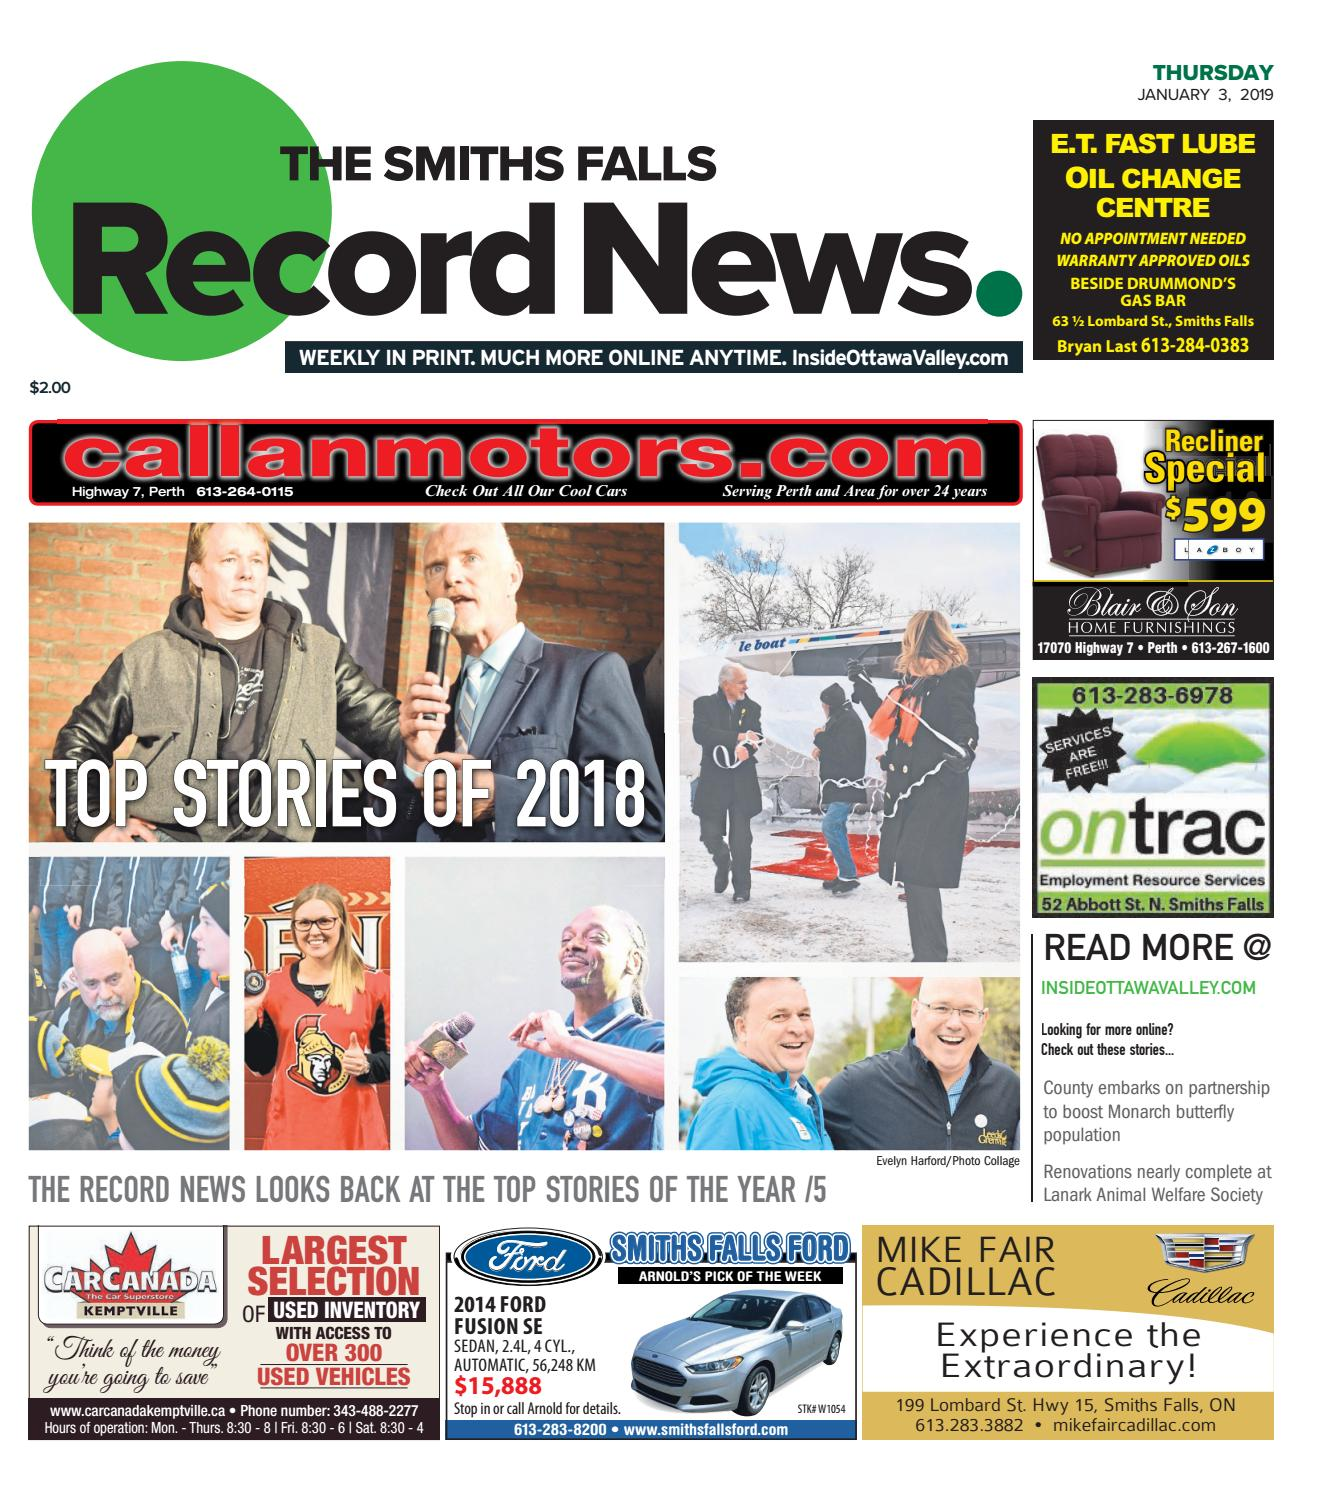 OTV_S_A_20190103 by Metroland East - Smiths Falls Record